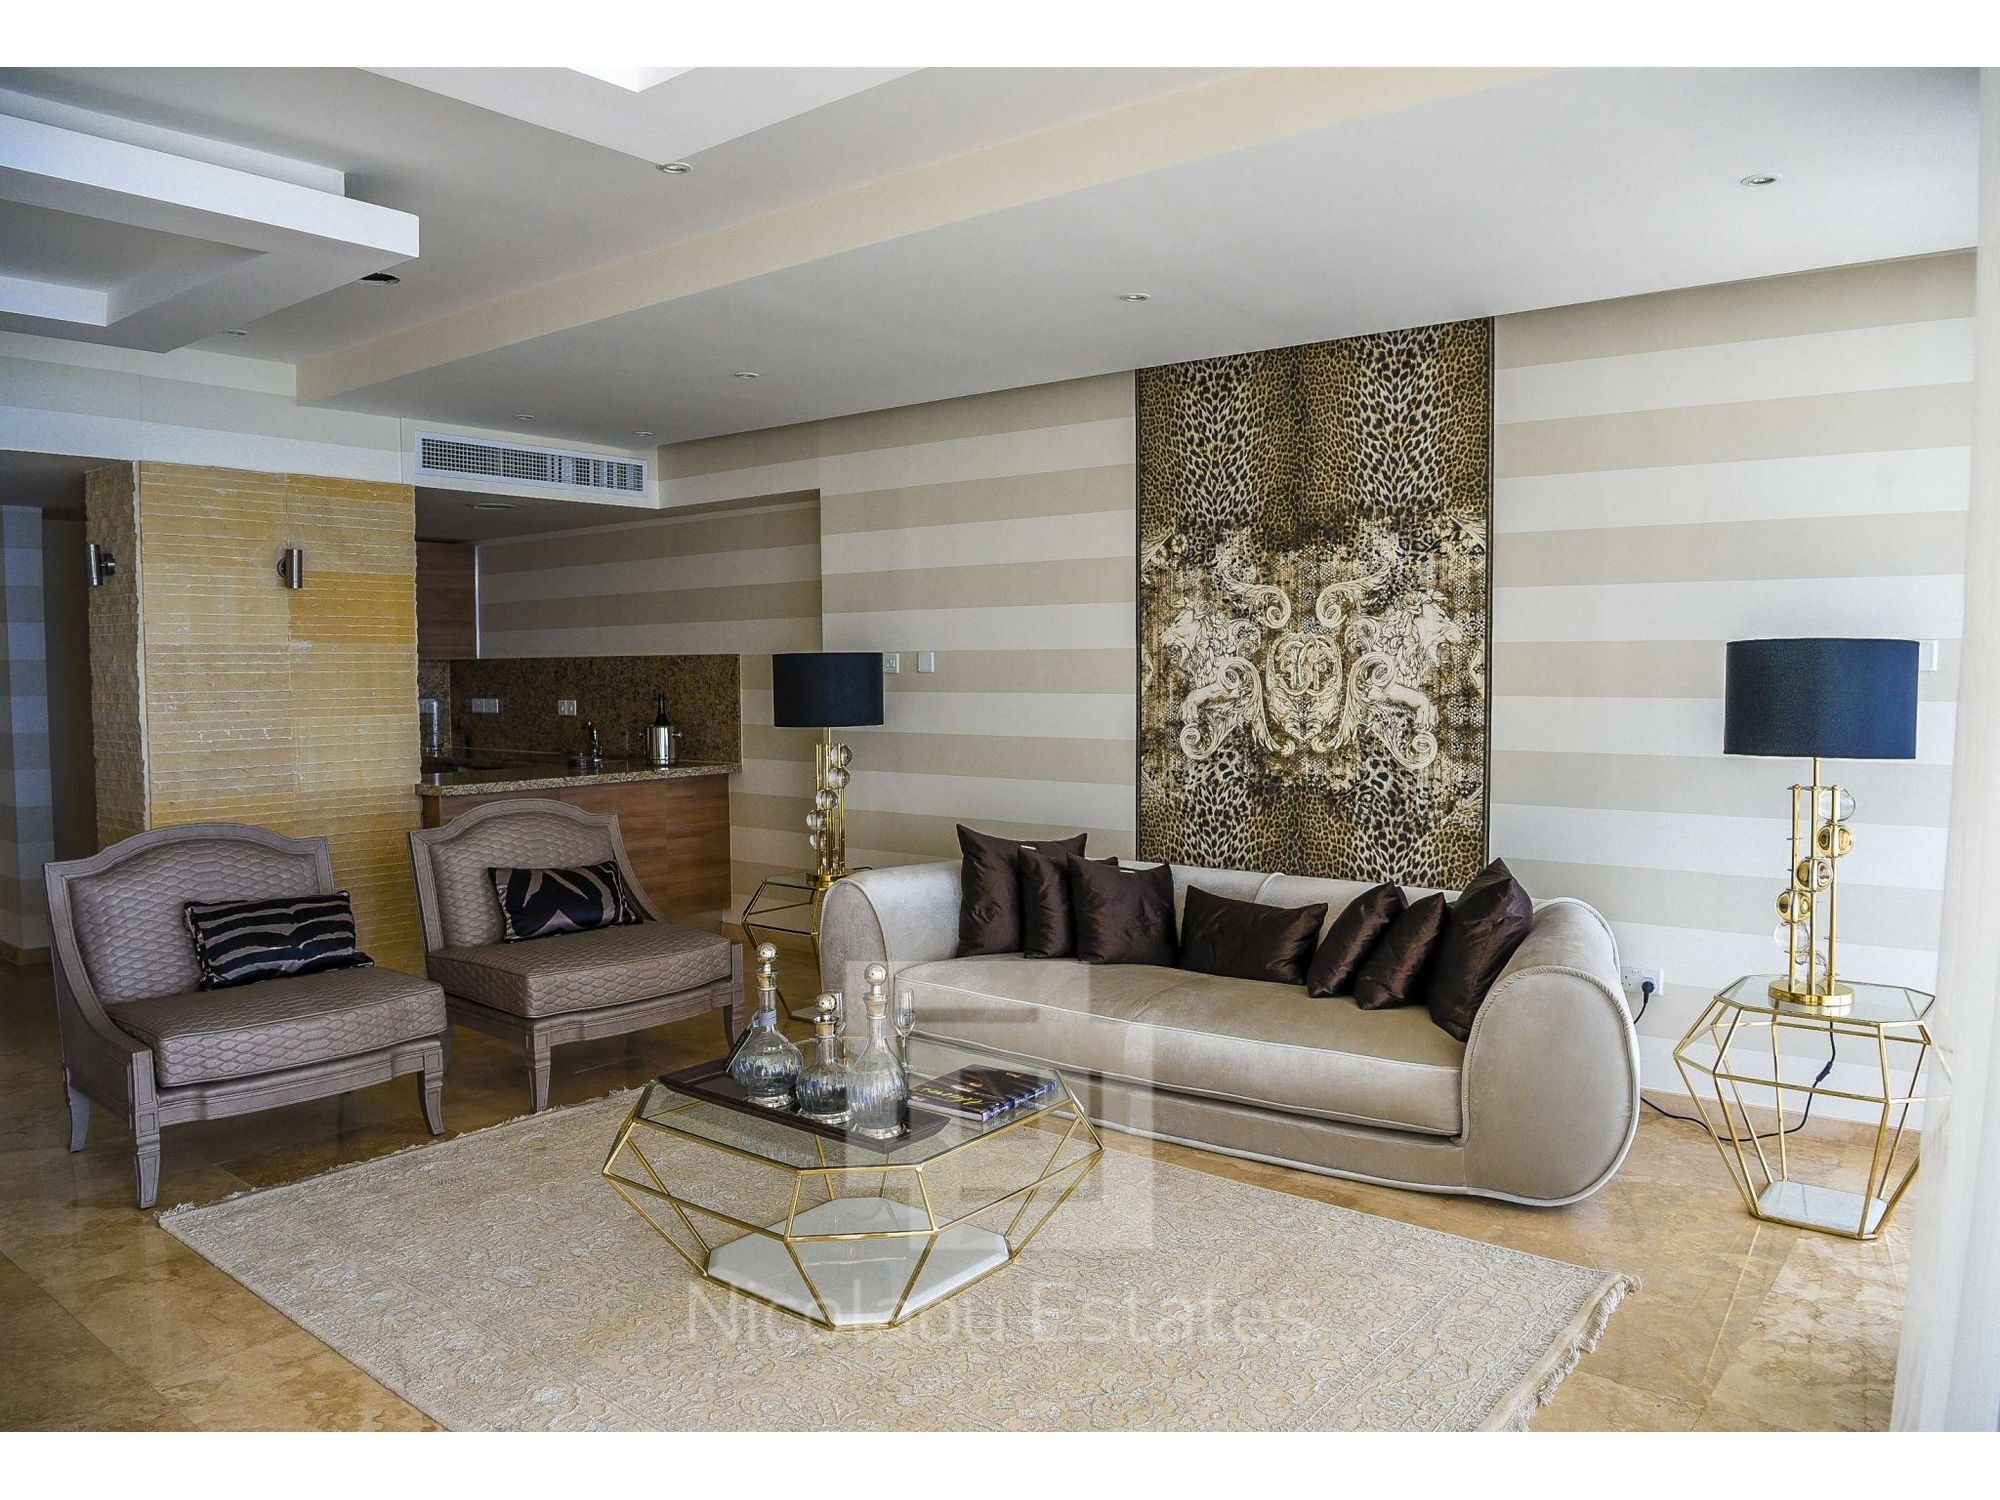 For Sale Luxury Three Bedroom Apartment For Sale On Limassol Sea Front Eur